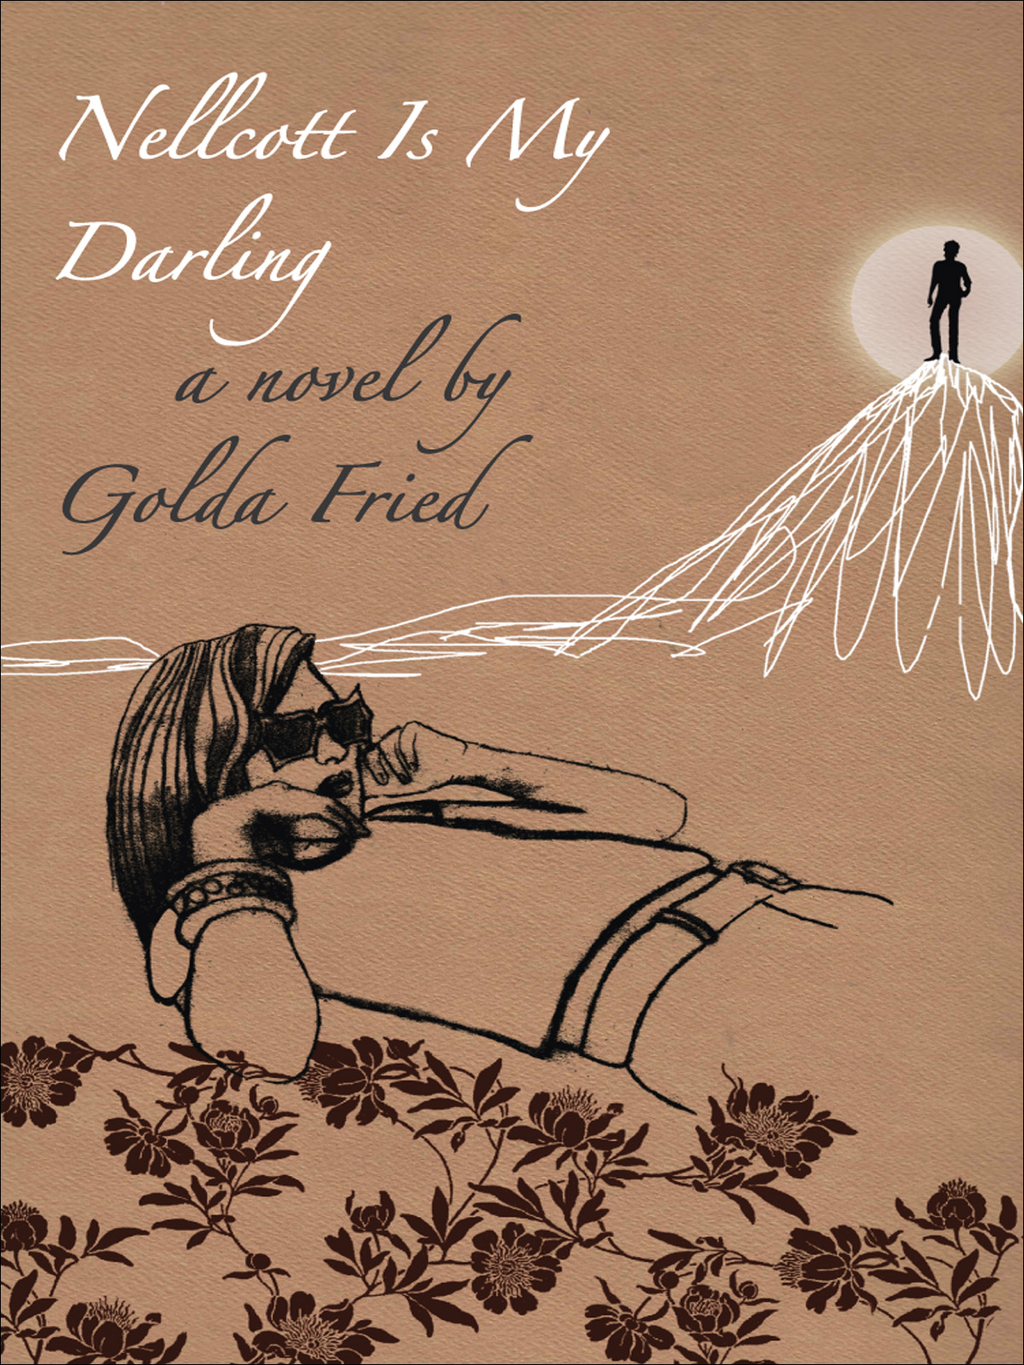 Nellcott Is My Darling By: Golda Fried